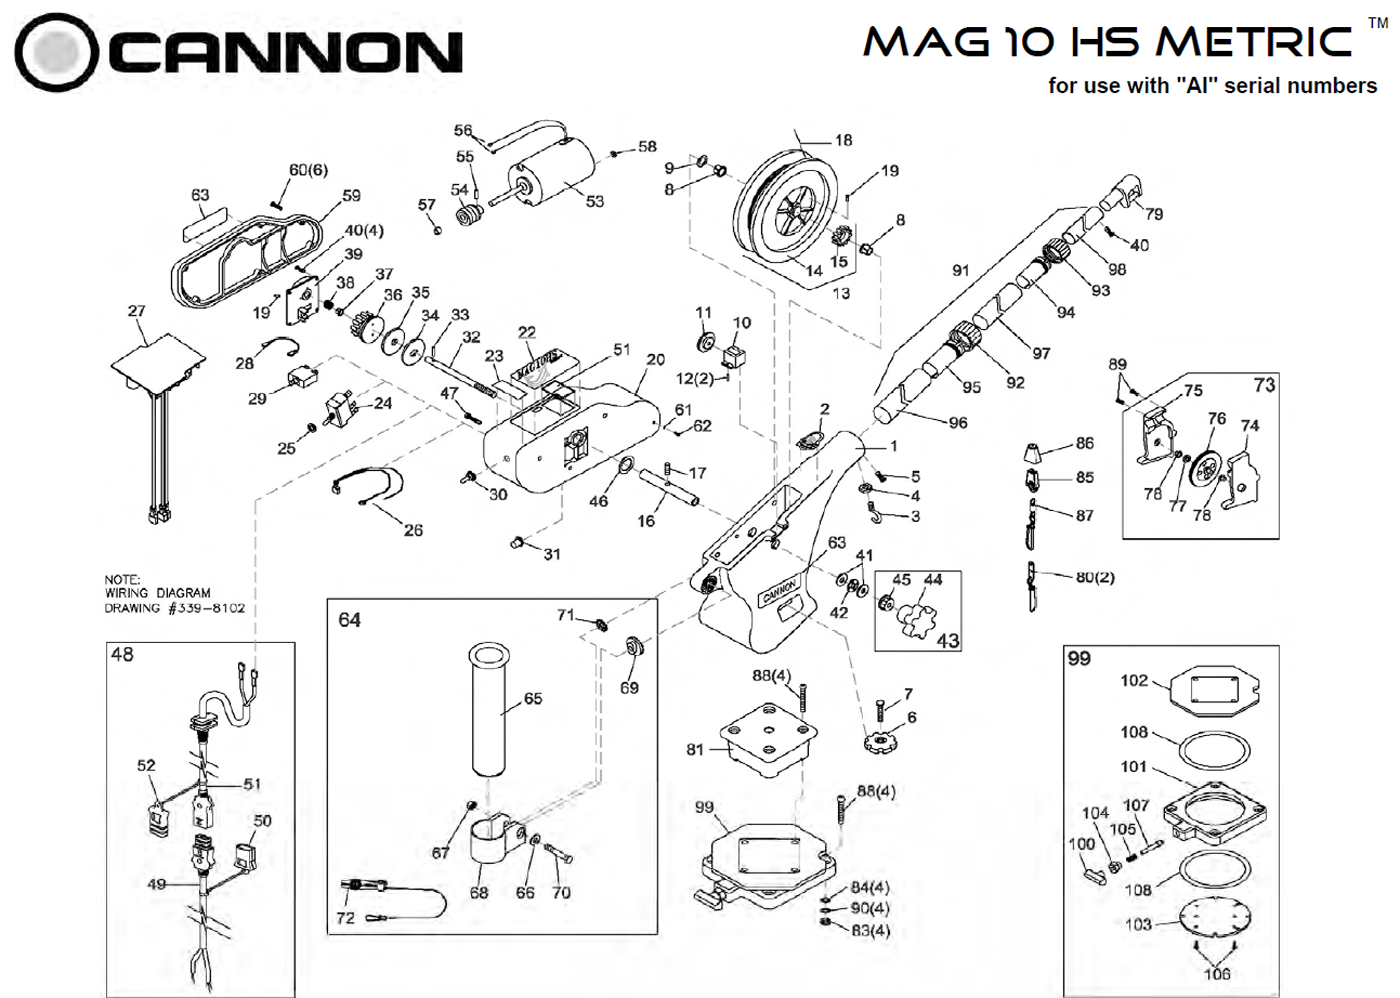 Cannon_Metric_Mag_10_HS order cannon metric mag 10 hs electric downrigger parts from scotty downrigger wiring diagram at metegol.co